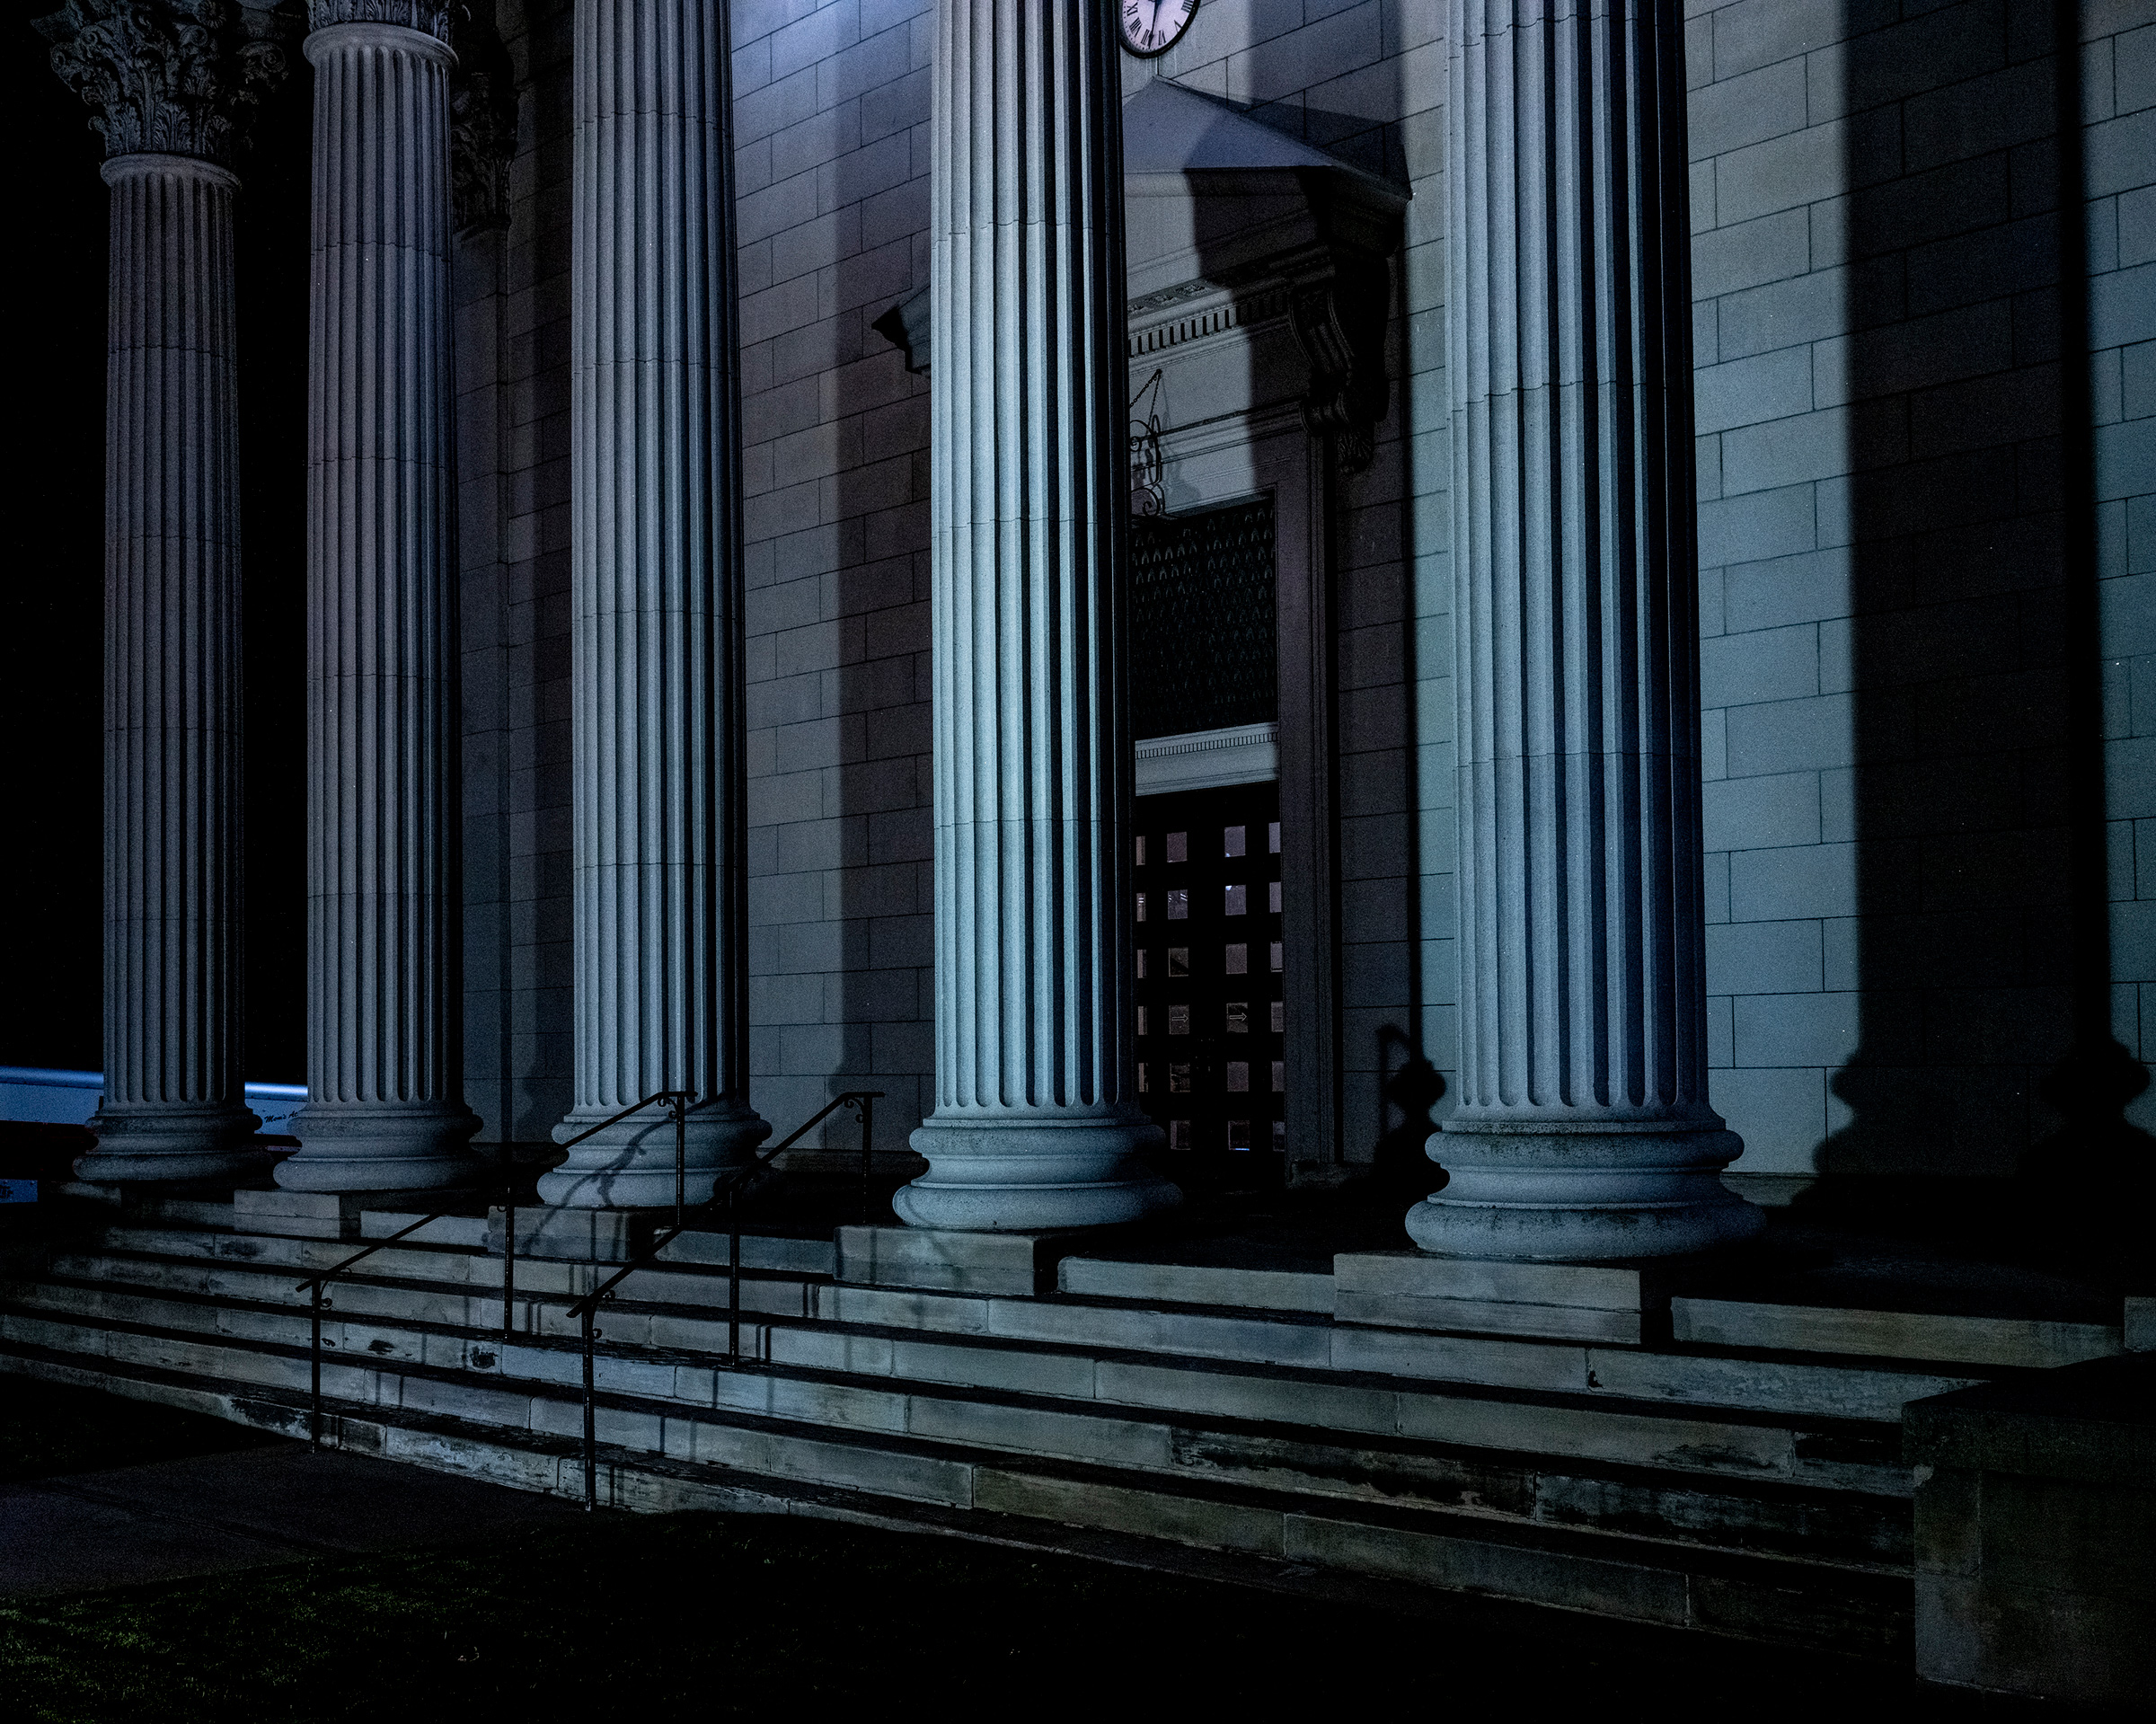 A courthouse in Pennsylvania, the most hotly contested state in this election and already the subject of legal challenges